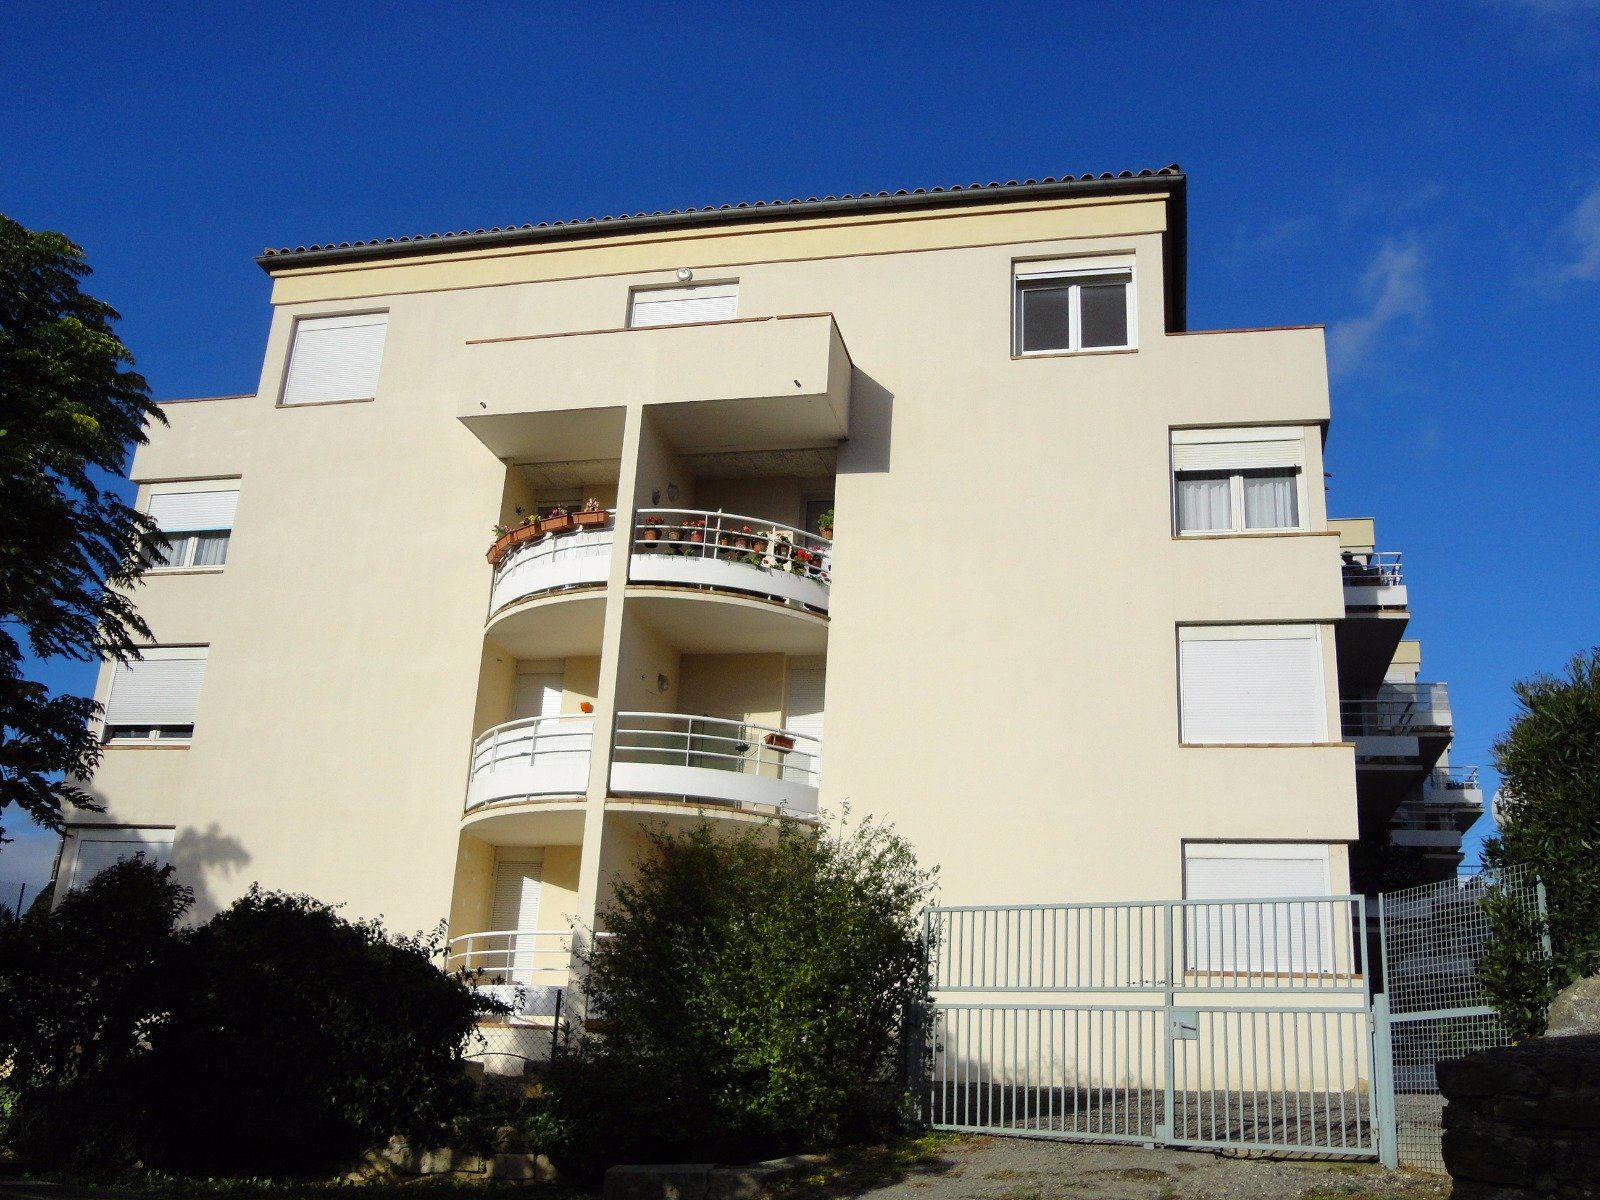 Apartment CARCASSONNE | 399 € / month